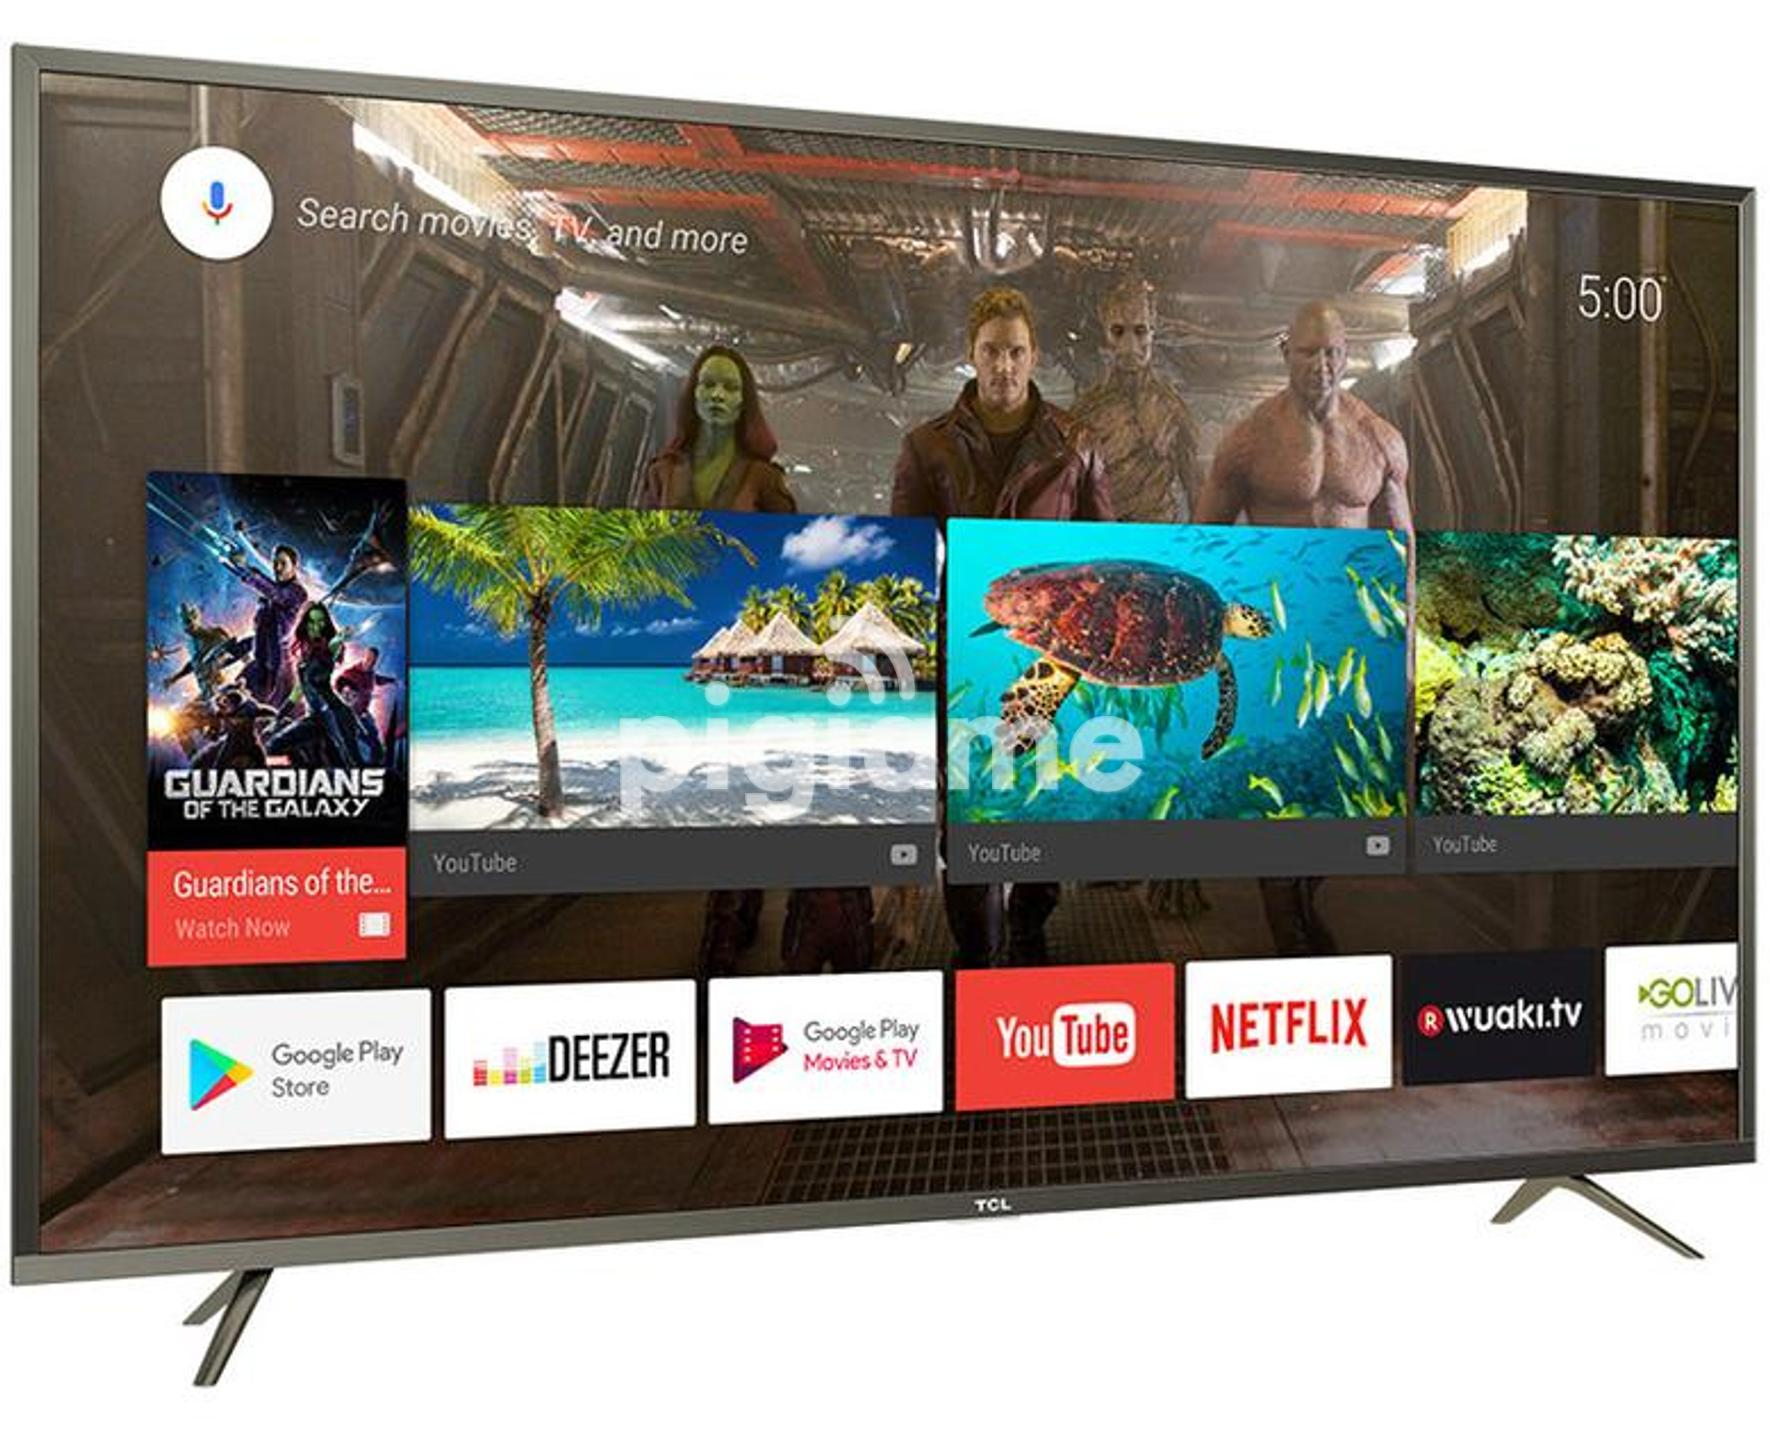 43 inch TCL smart android TV